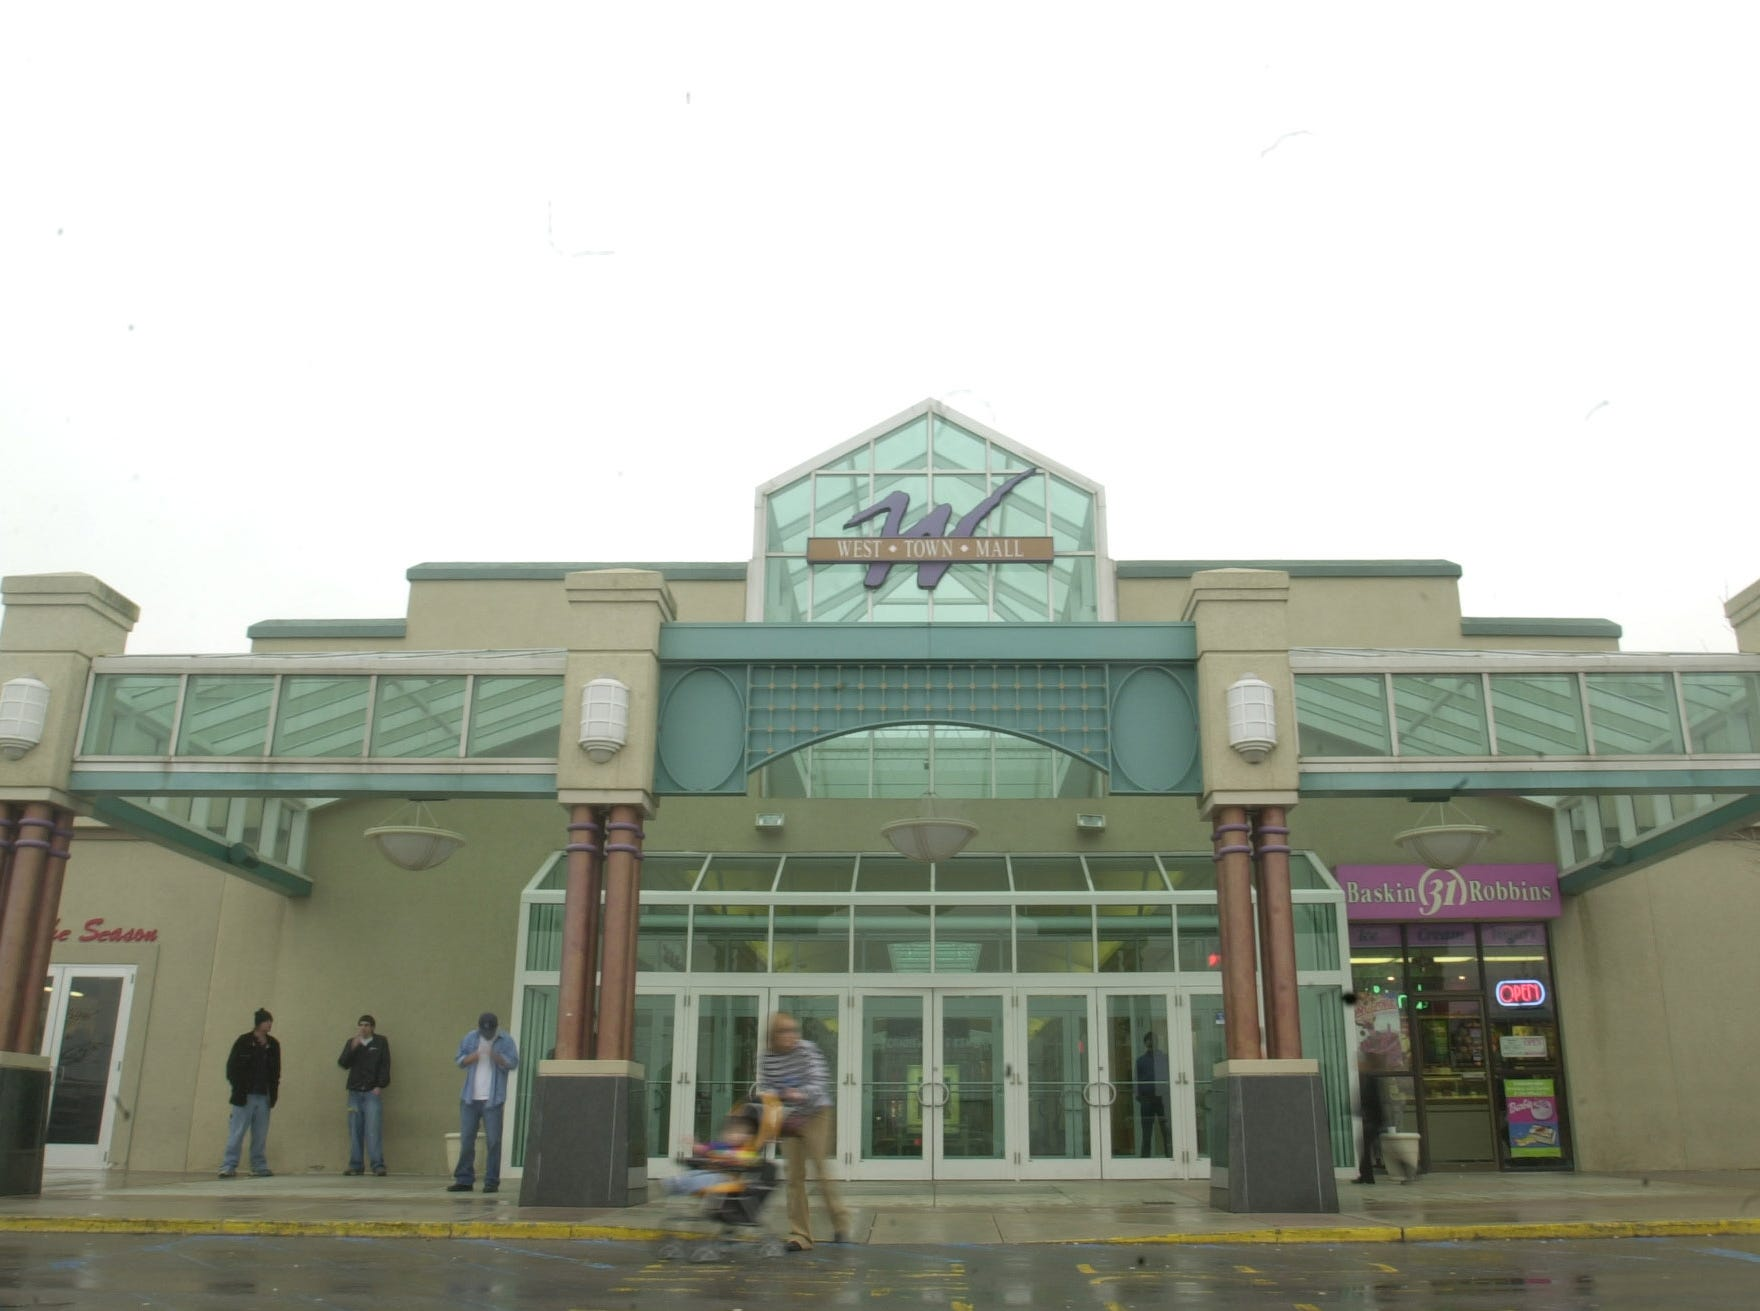 West Town Mall. 2003